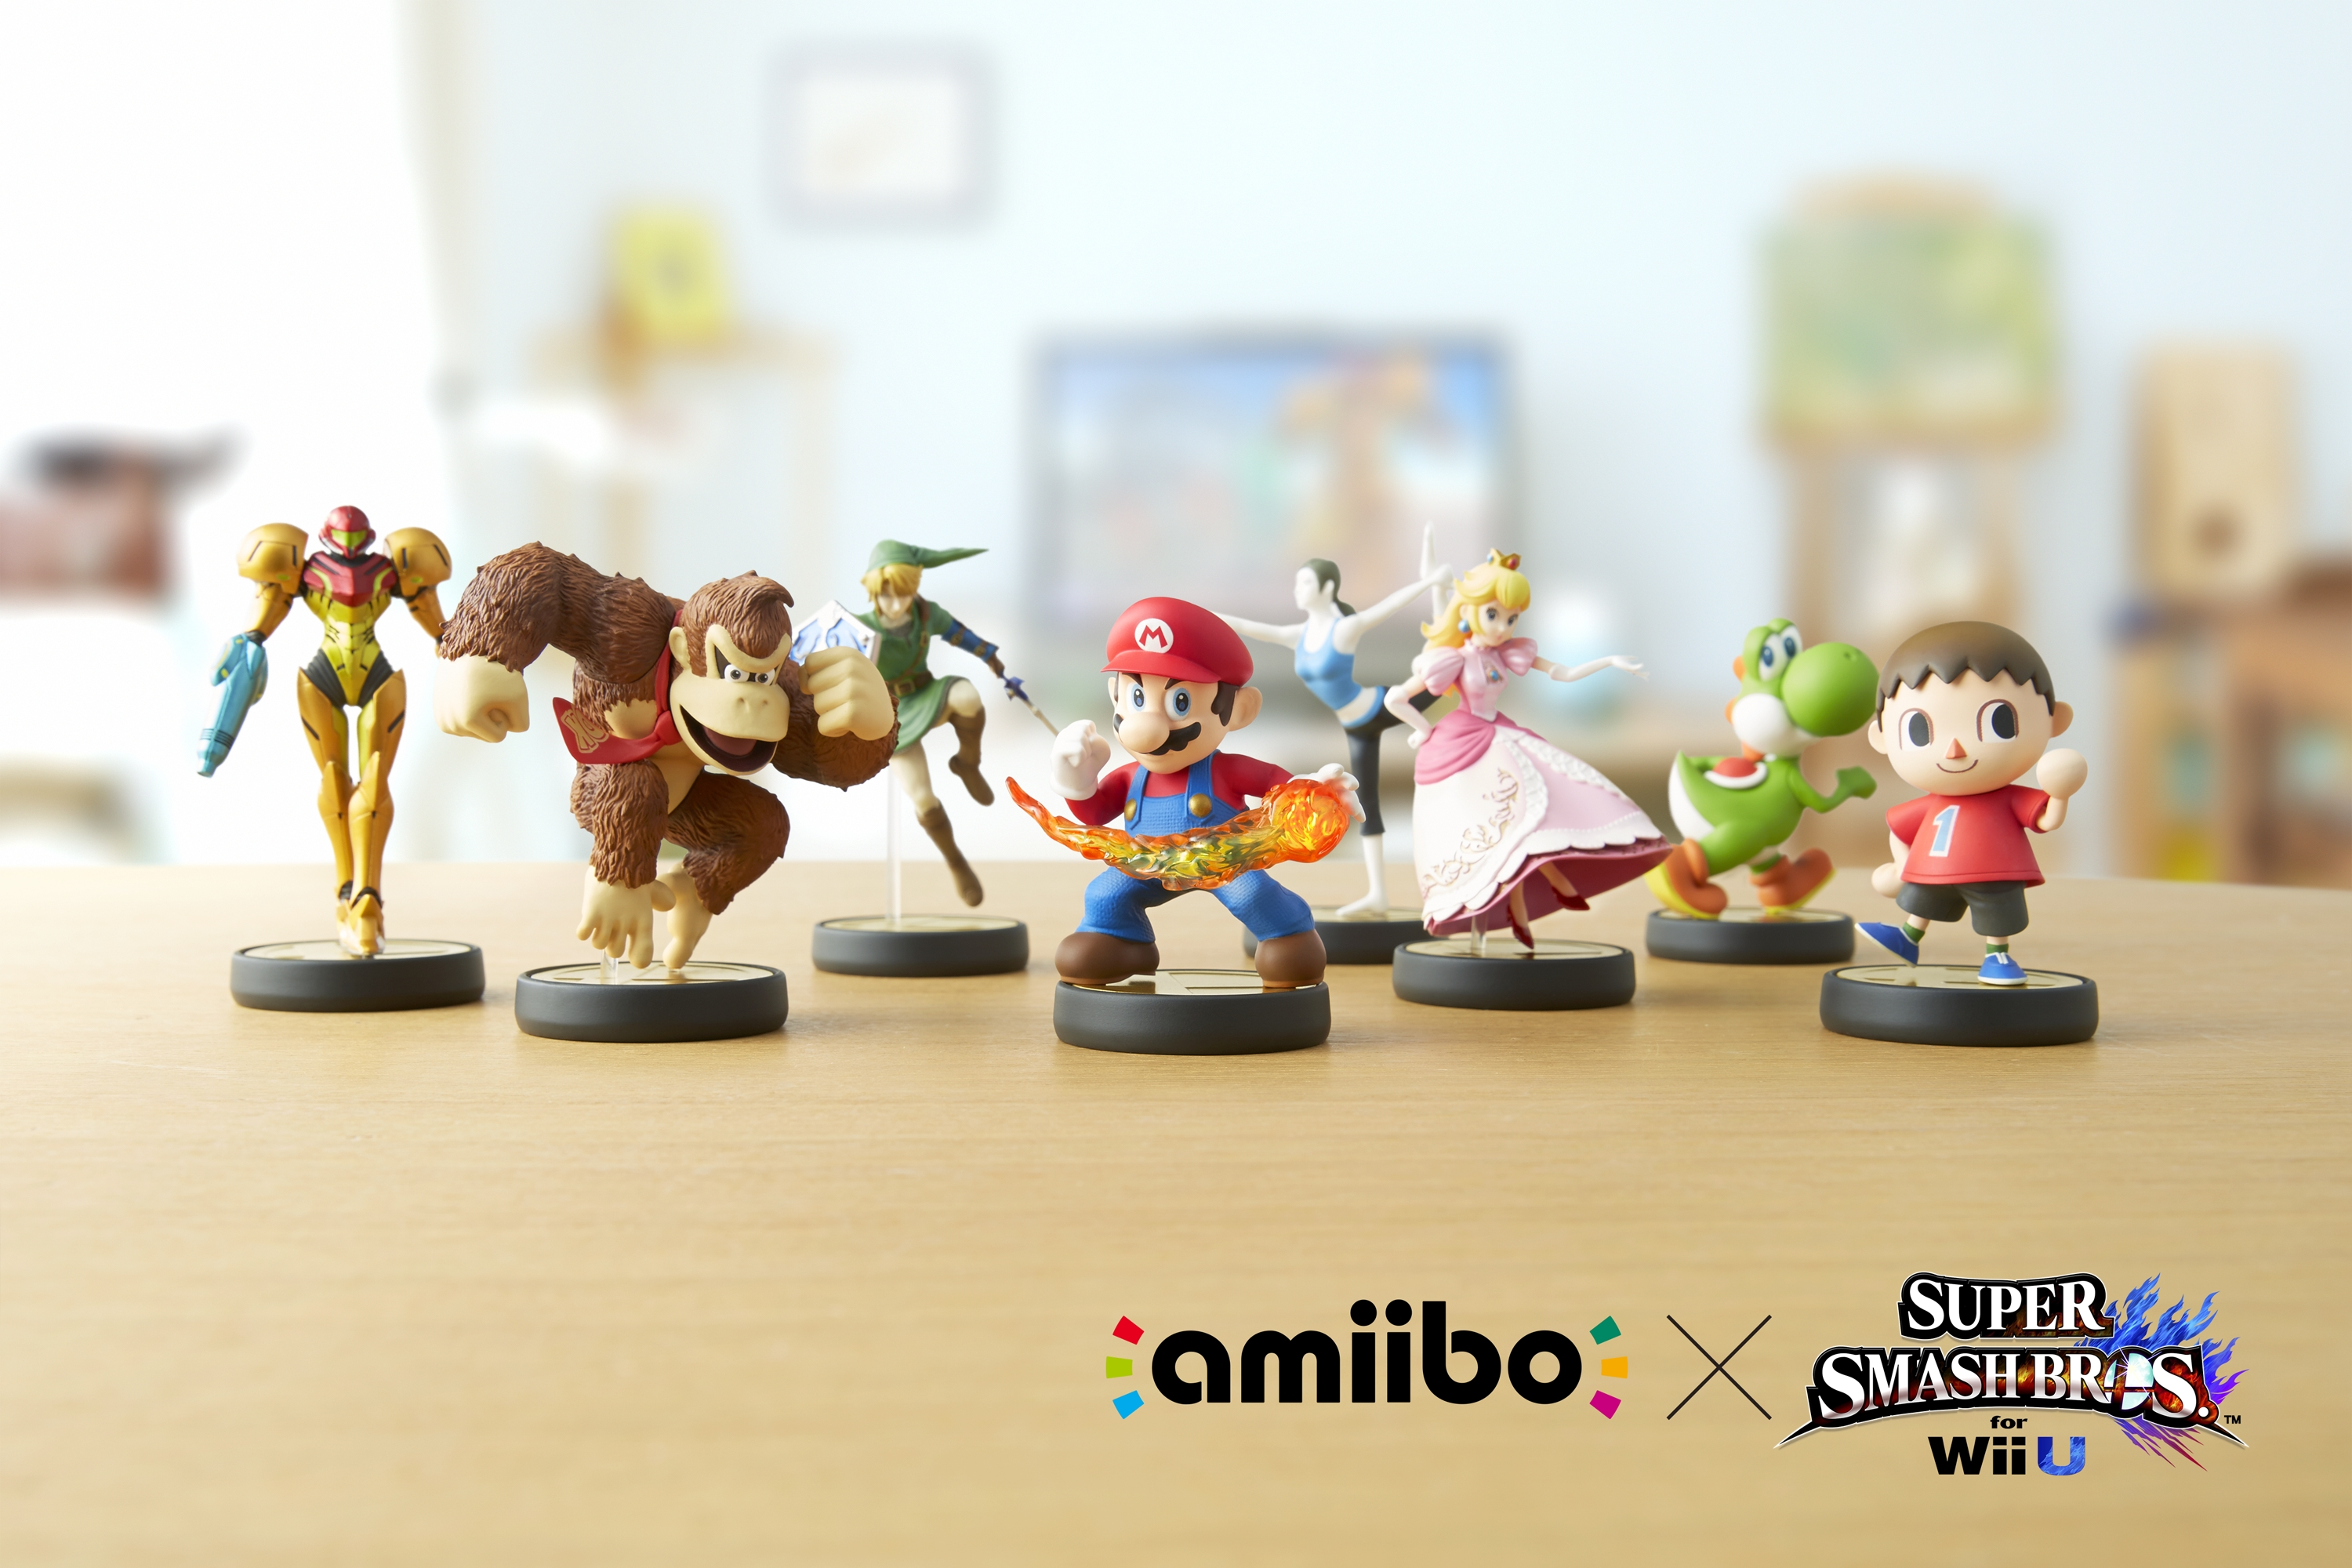 Super Smash Bros. for Wii U will be the first game to support amiibo. Other games that will support amiibo include Mario Kart 8, Captain Toad: Treasure Tracker, Mario Party 10 and Yoshi's Woolly World, with more to come. (Photo: Business Wire)